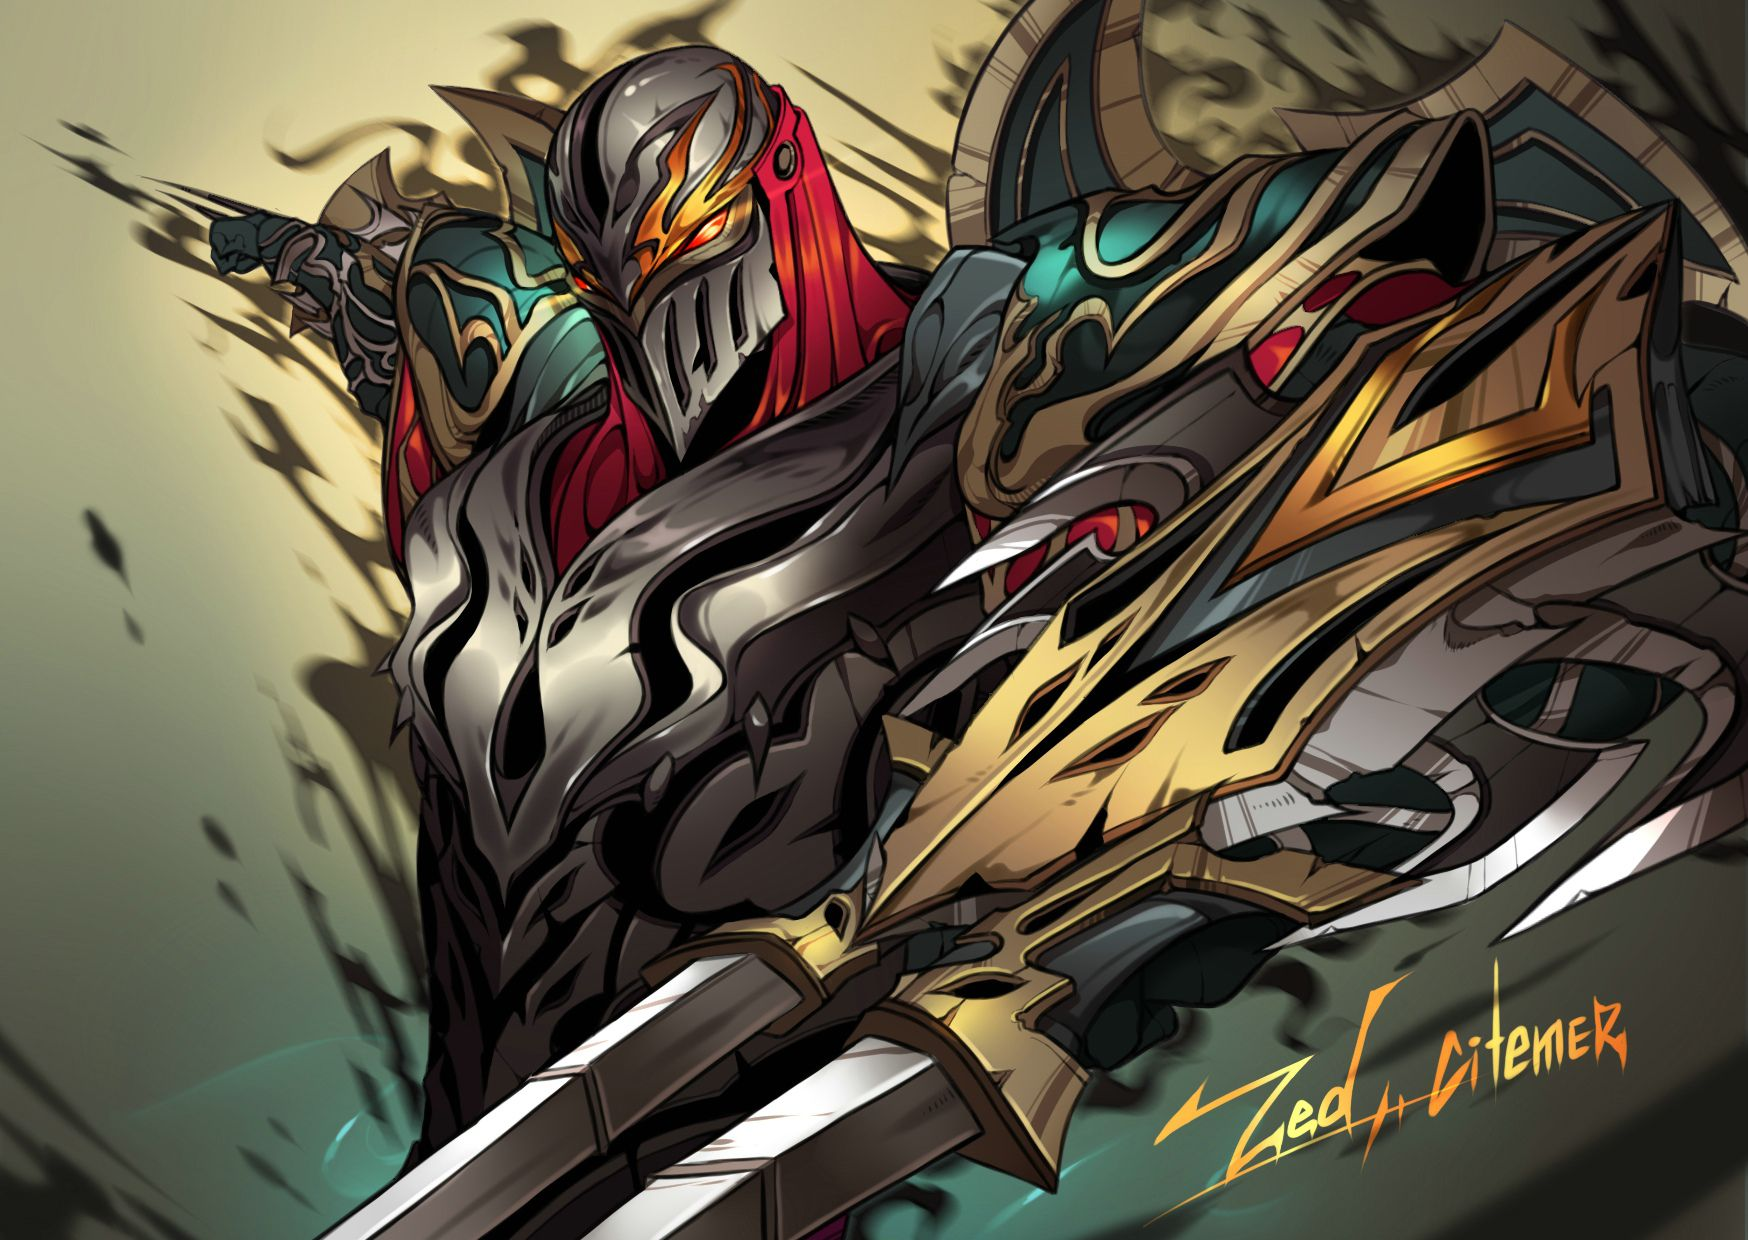 zed league of legends fanart artist citemer league of legends rh pinterest com